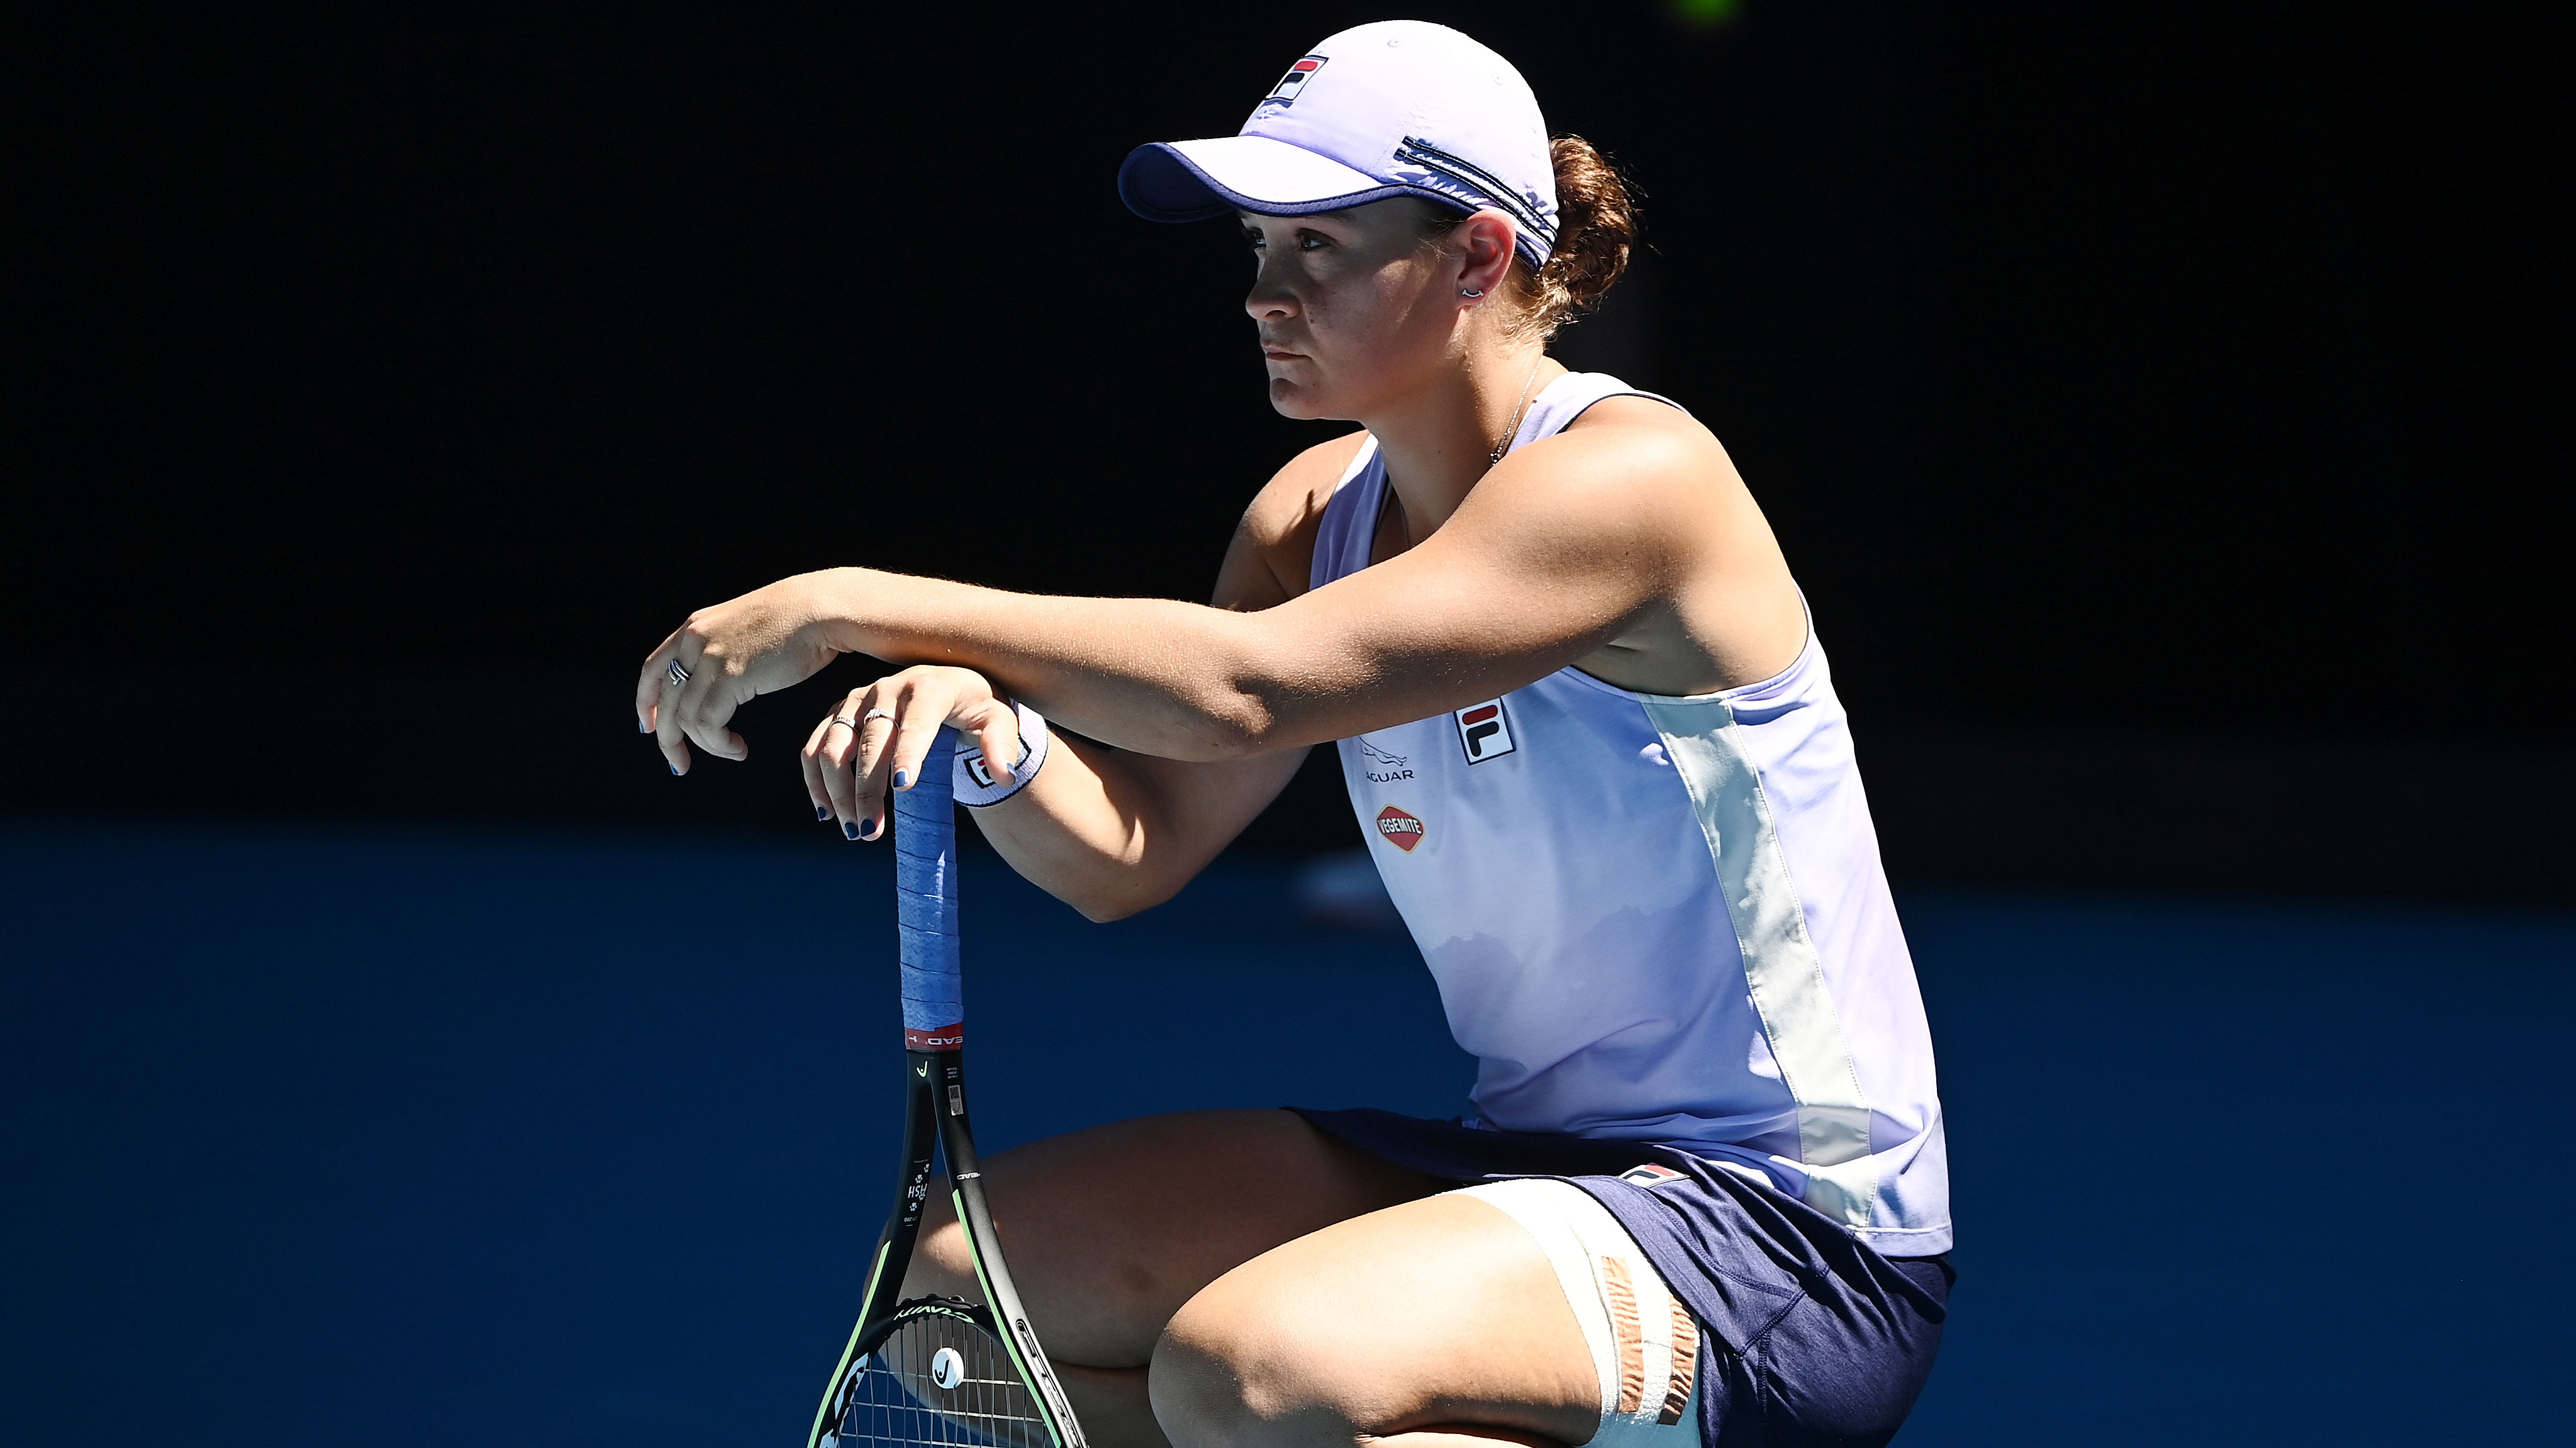 Ash Barty cuts a frustrated figure during her Australian Open quarter-final against Karolina Muchova.